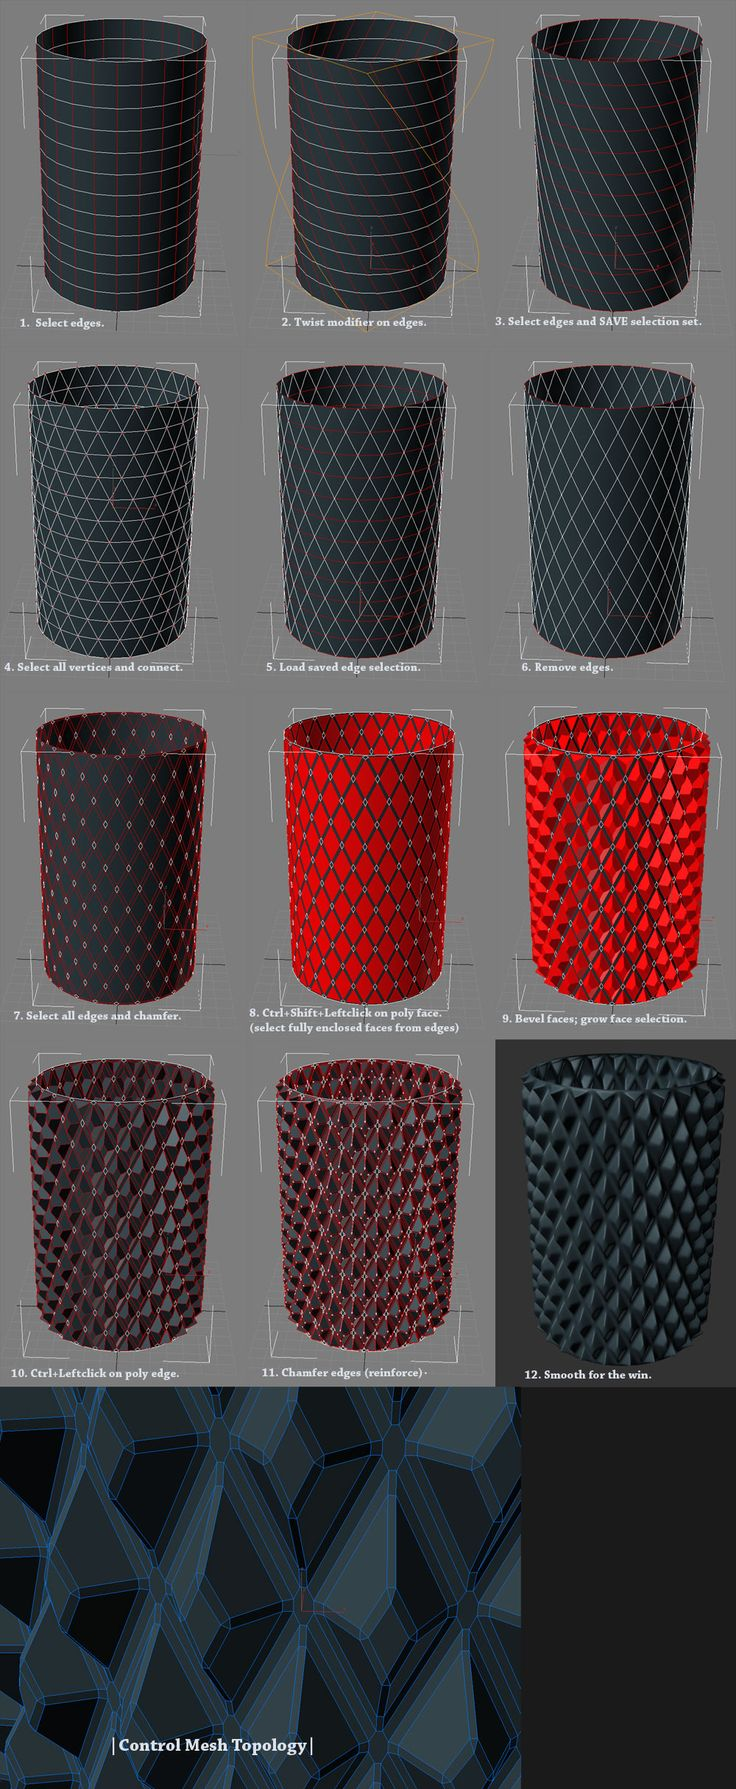 Mesh topology, mini-lessons - Computer graphics and animation - Render.ru